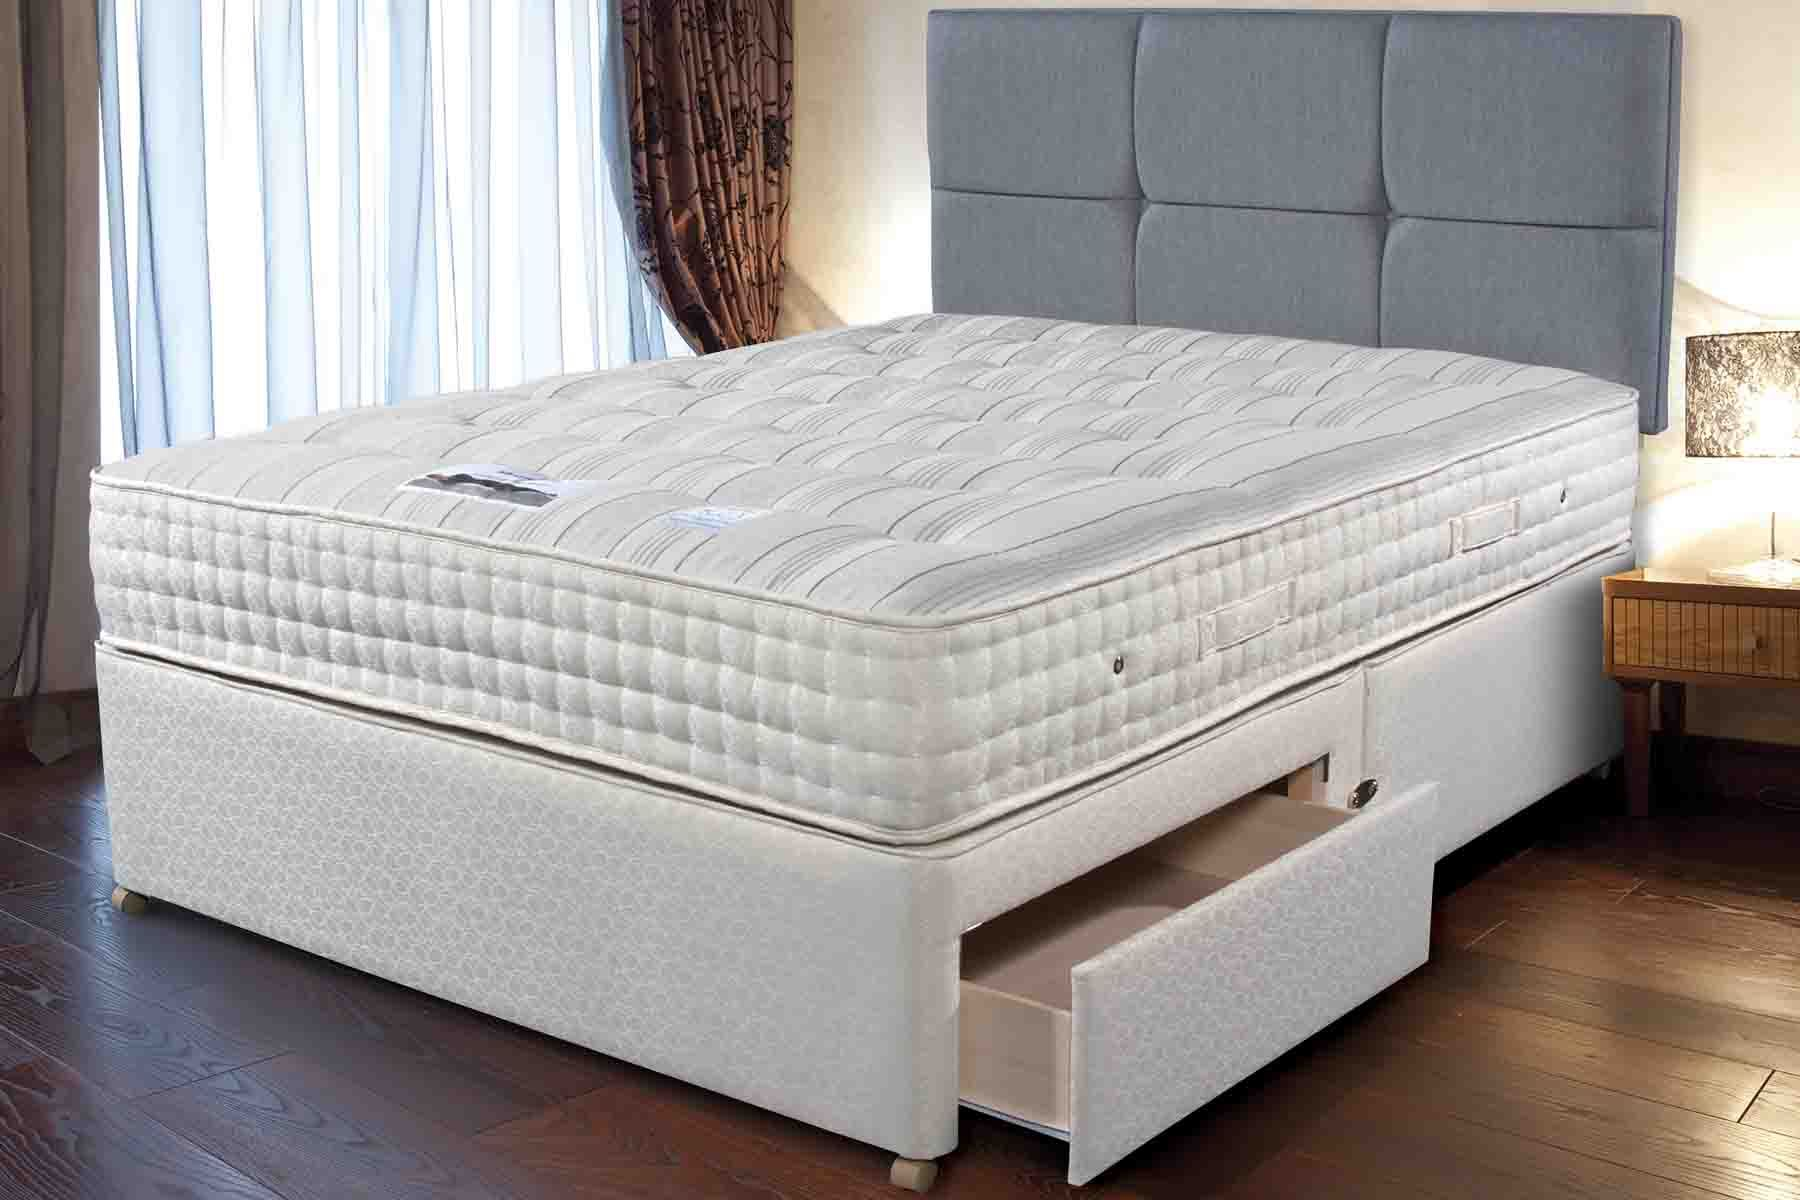 Sleepeezee Cashmere Royale Pocket Mattress Mattress, Bed